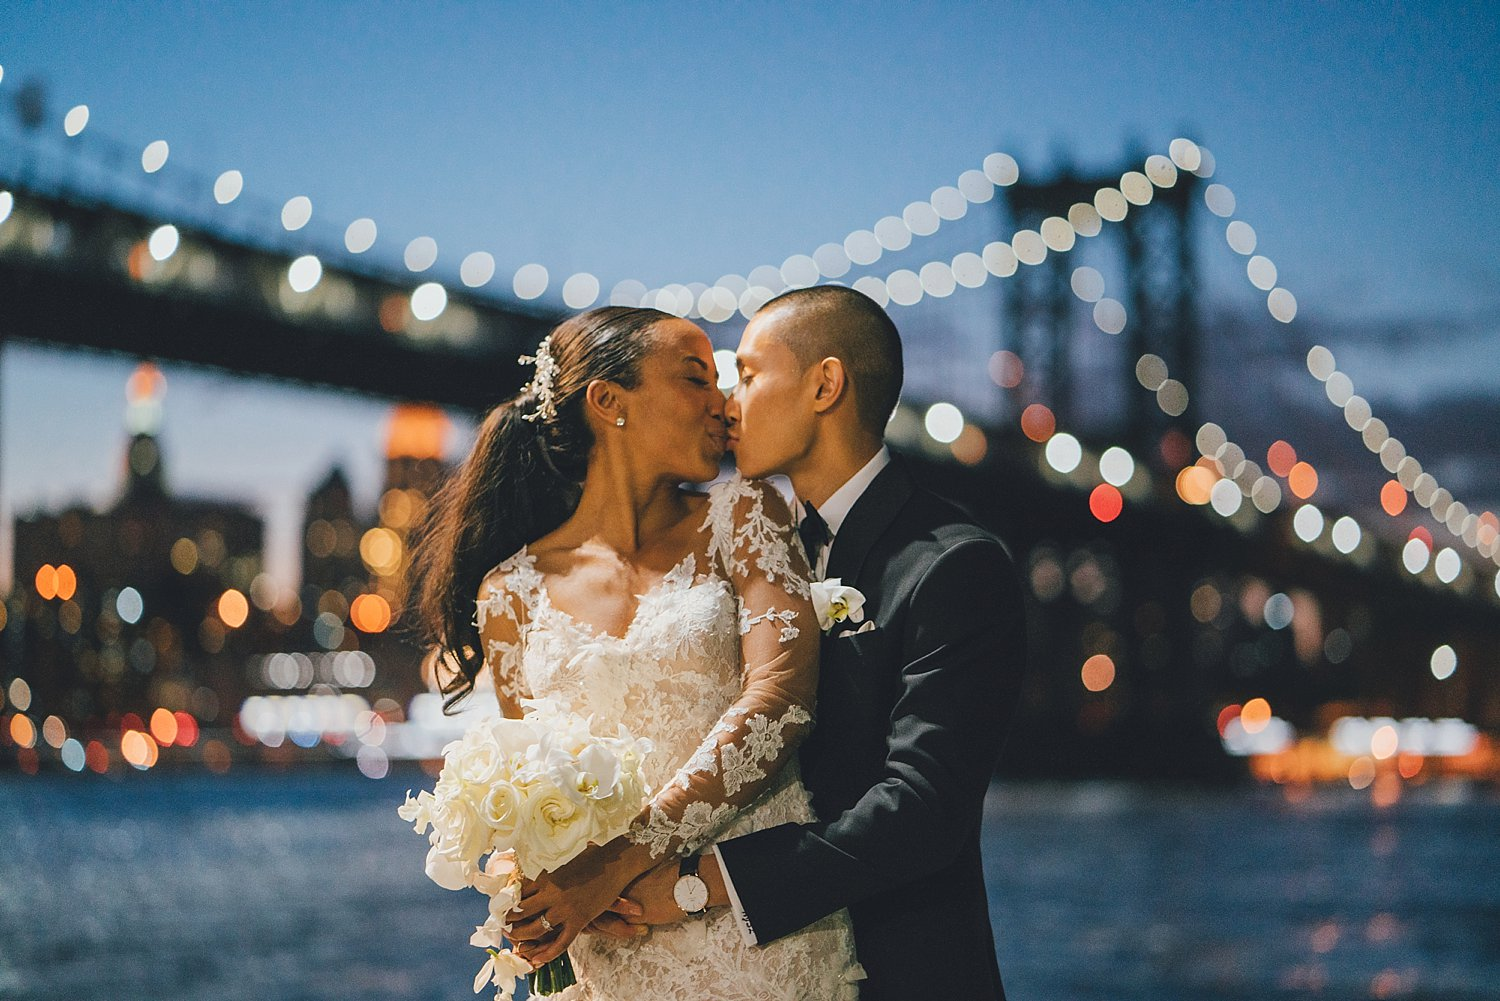 nyc-wedding-photography-nj-tri-state-cinematography-intothestory-by-moo-jae_0198.jpg